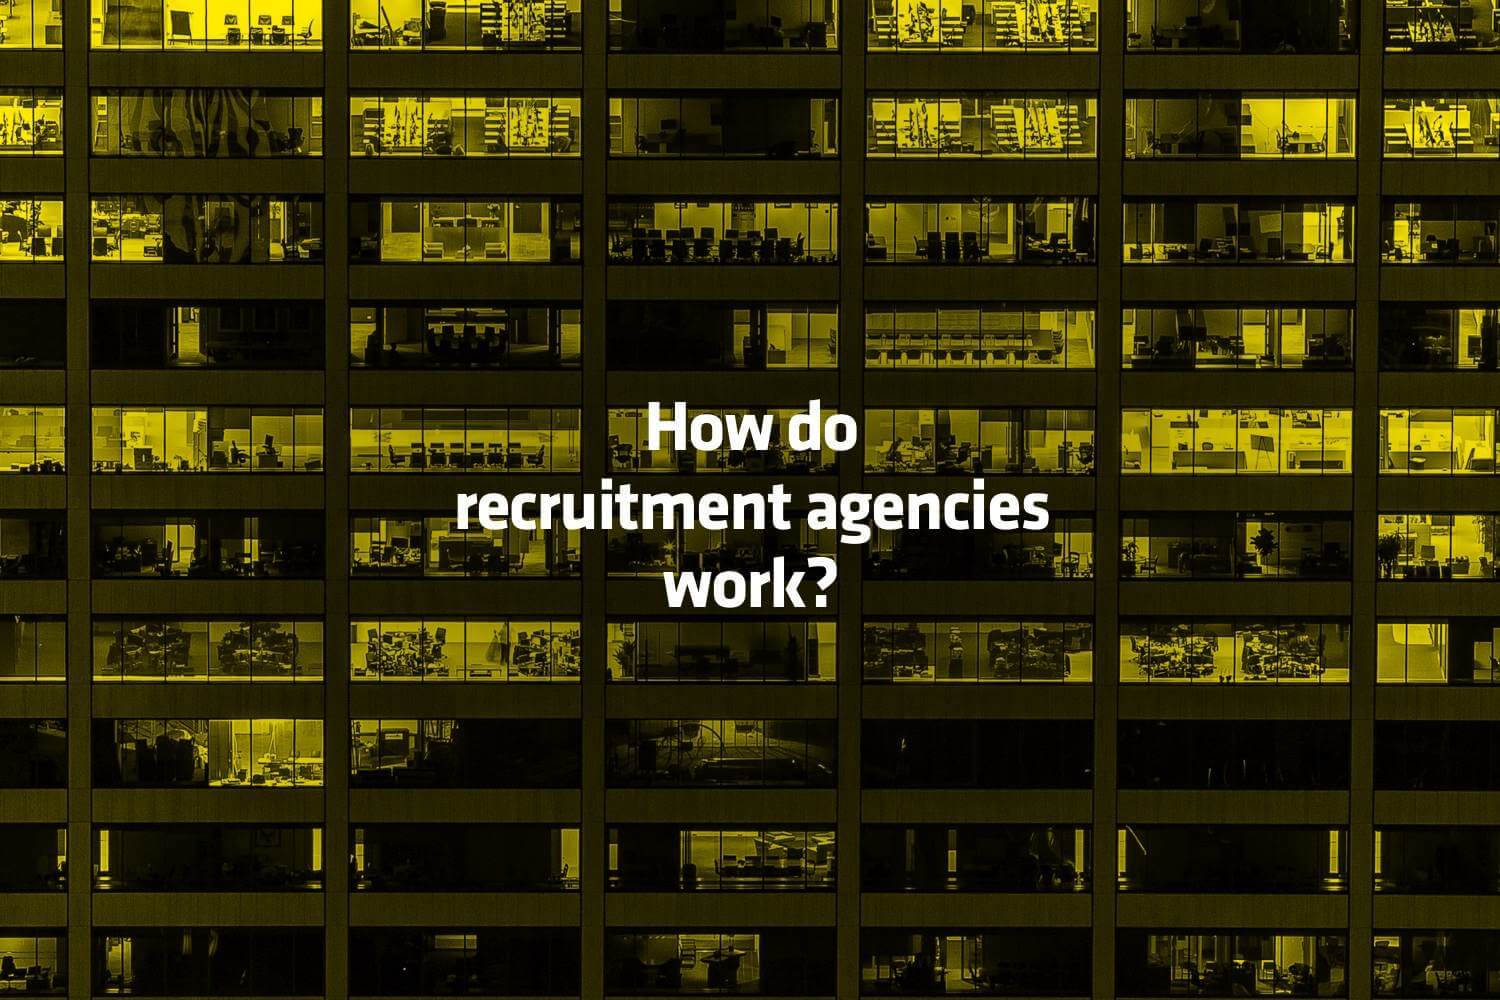 How Do Recruitment Agencies Work?